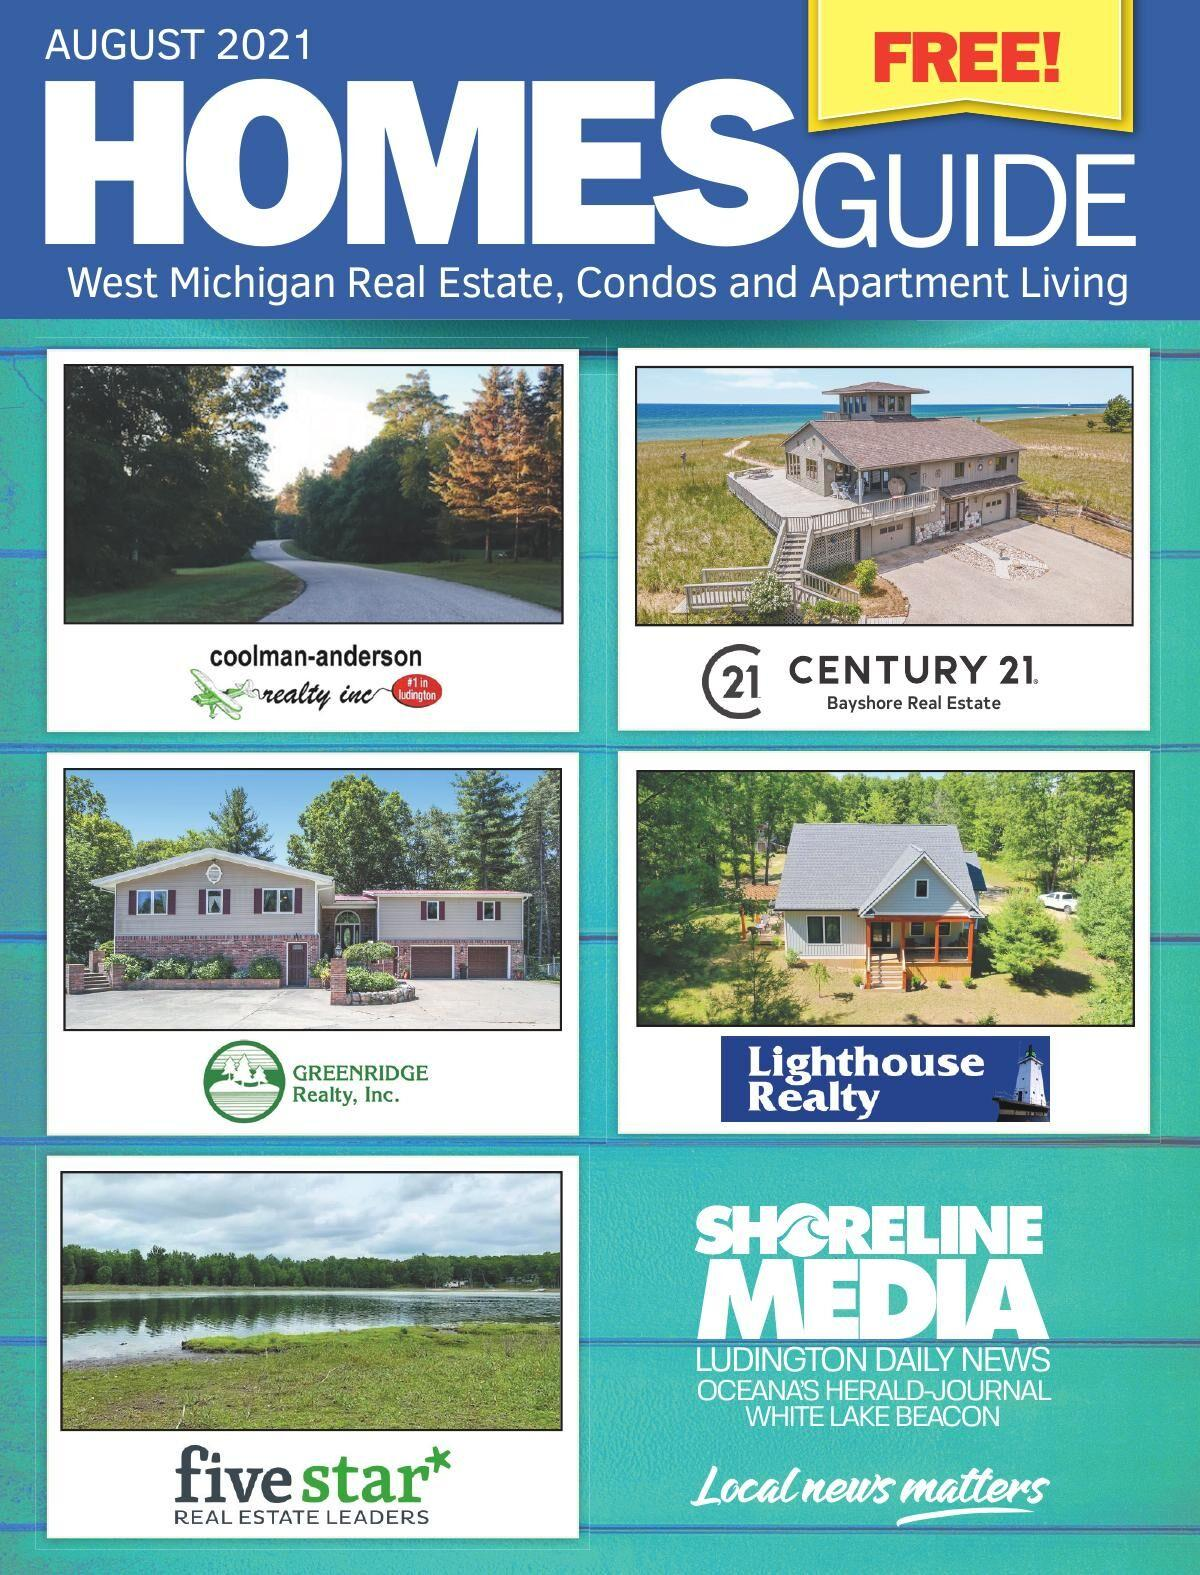 Homes Guide - August 2021